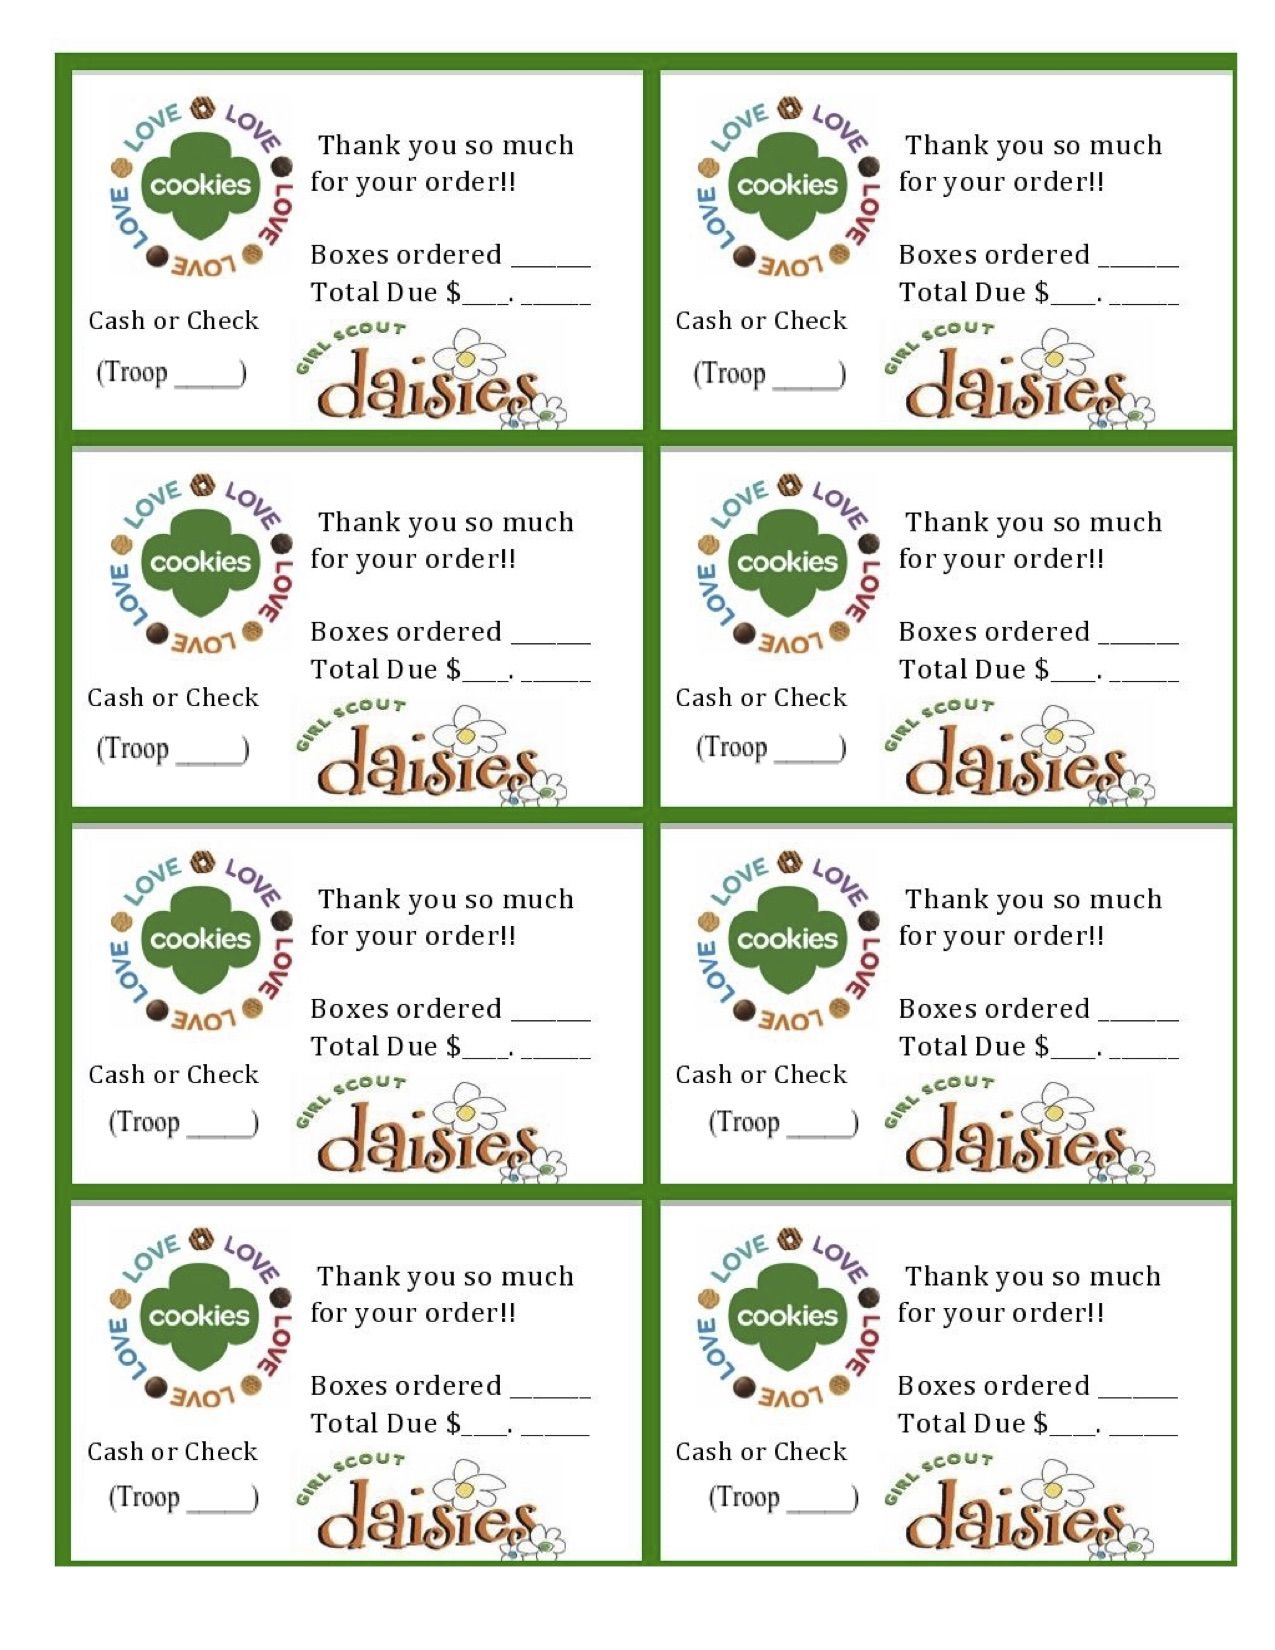 Printable Daisy Girl Scouts Cookie Sales Invoice And Thank You